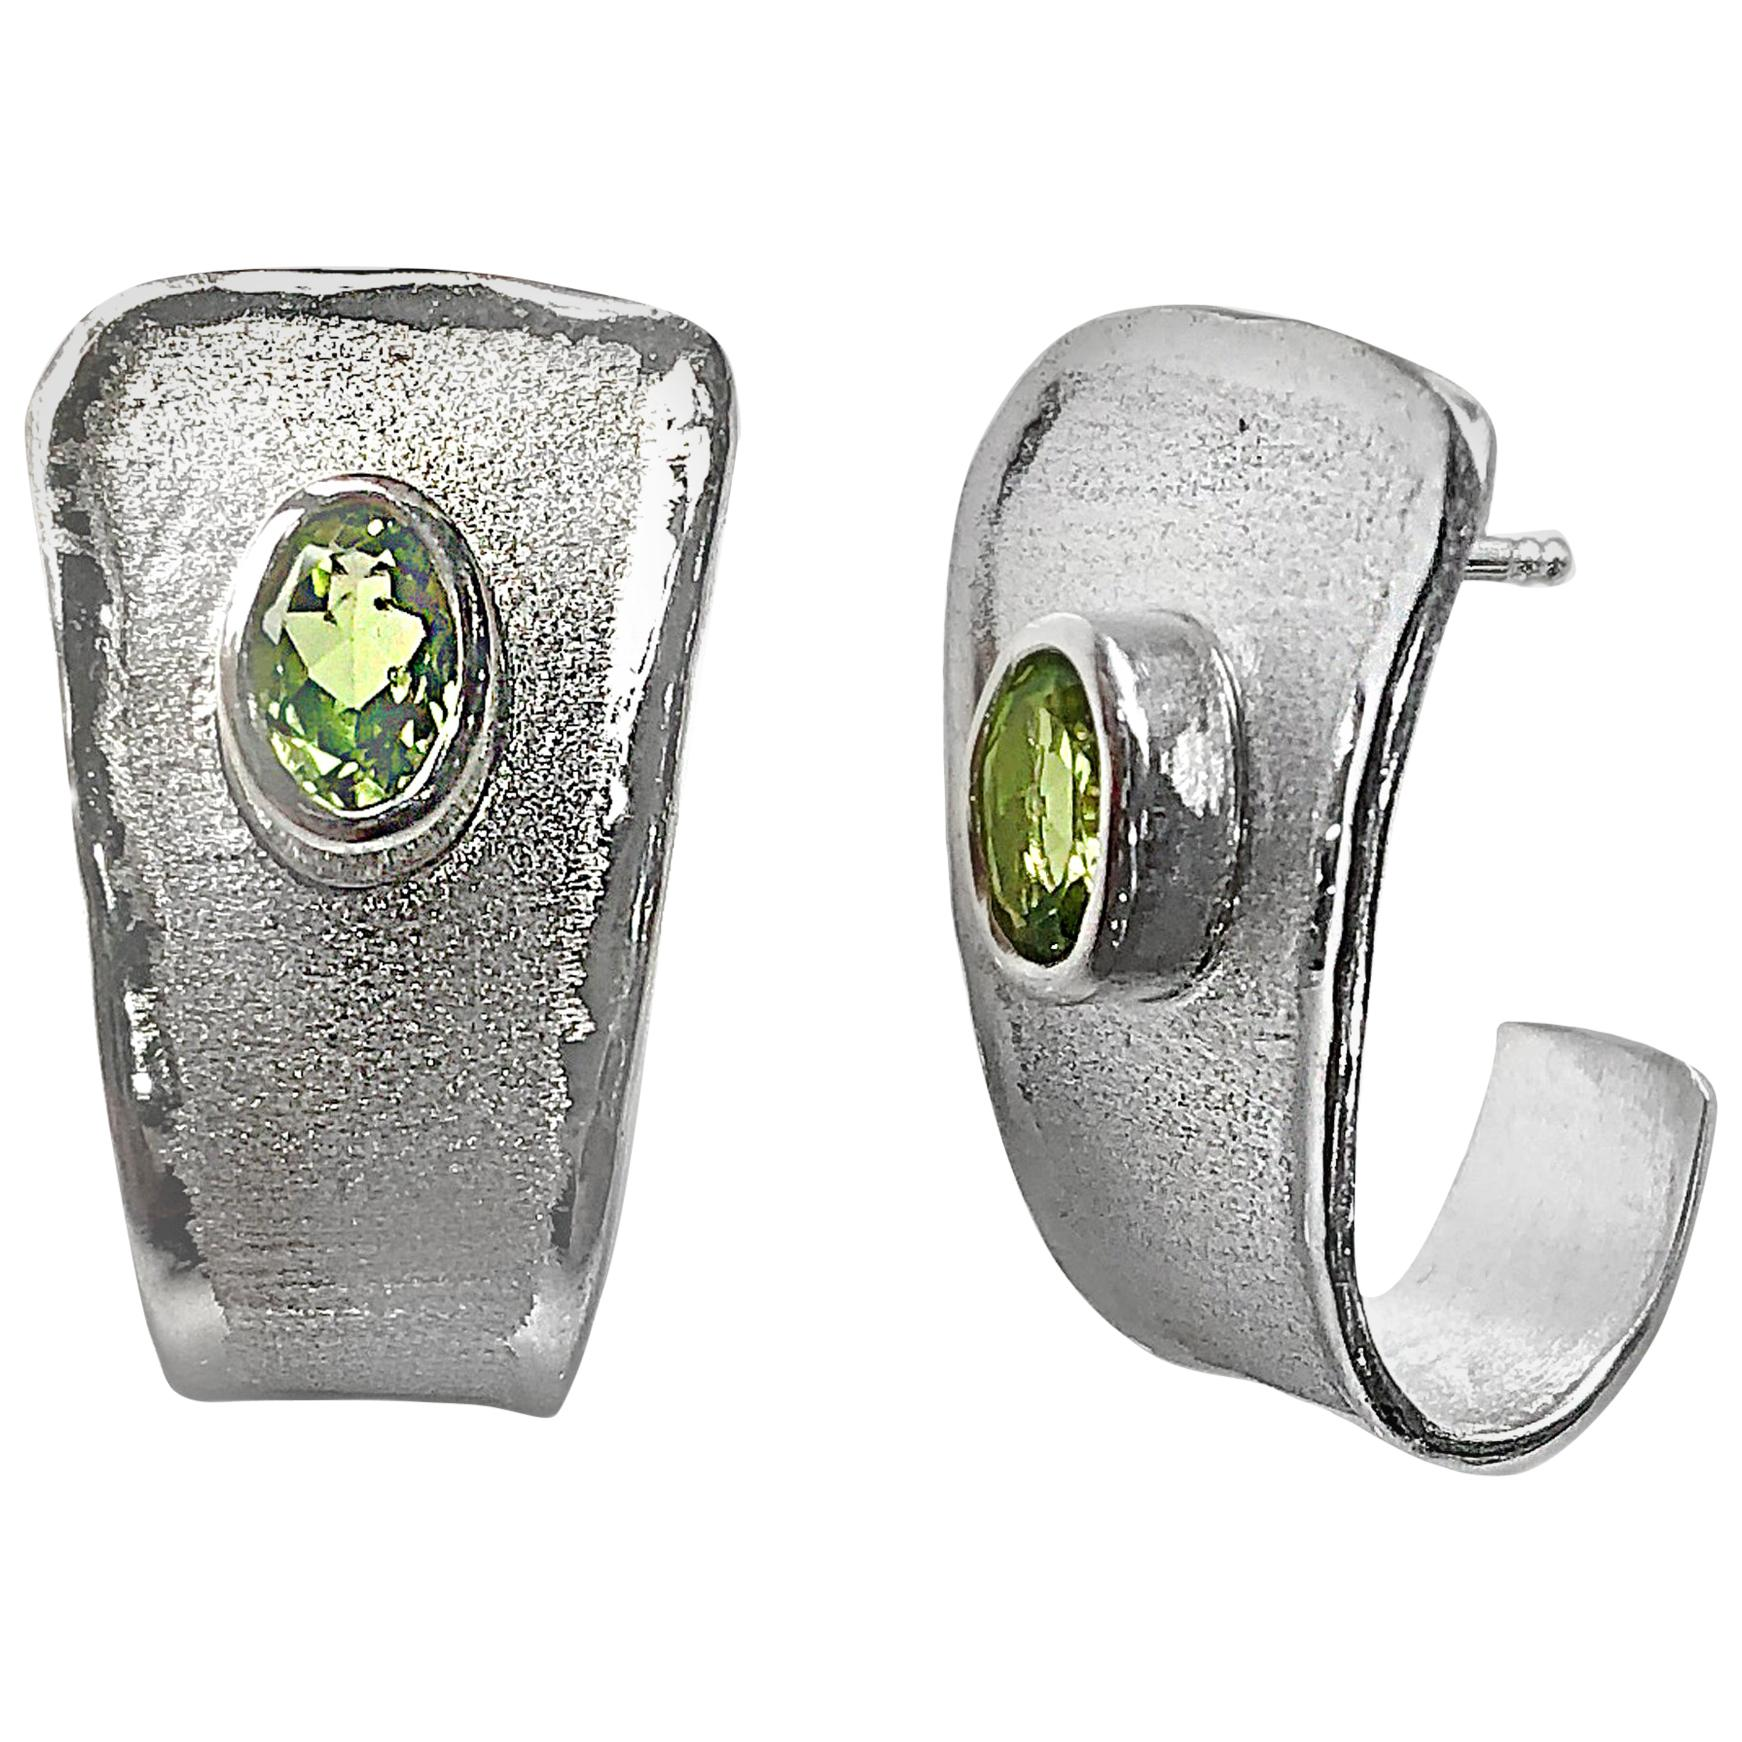 Yianni Creations 2.70 Carat Peridot Fine Silver Palladium Earrings